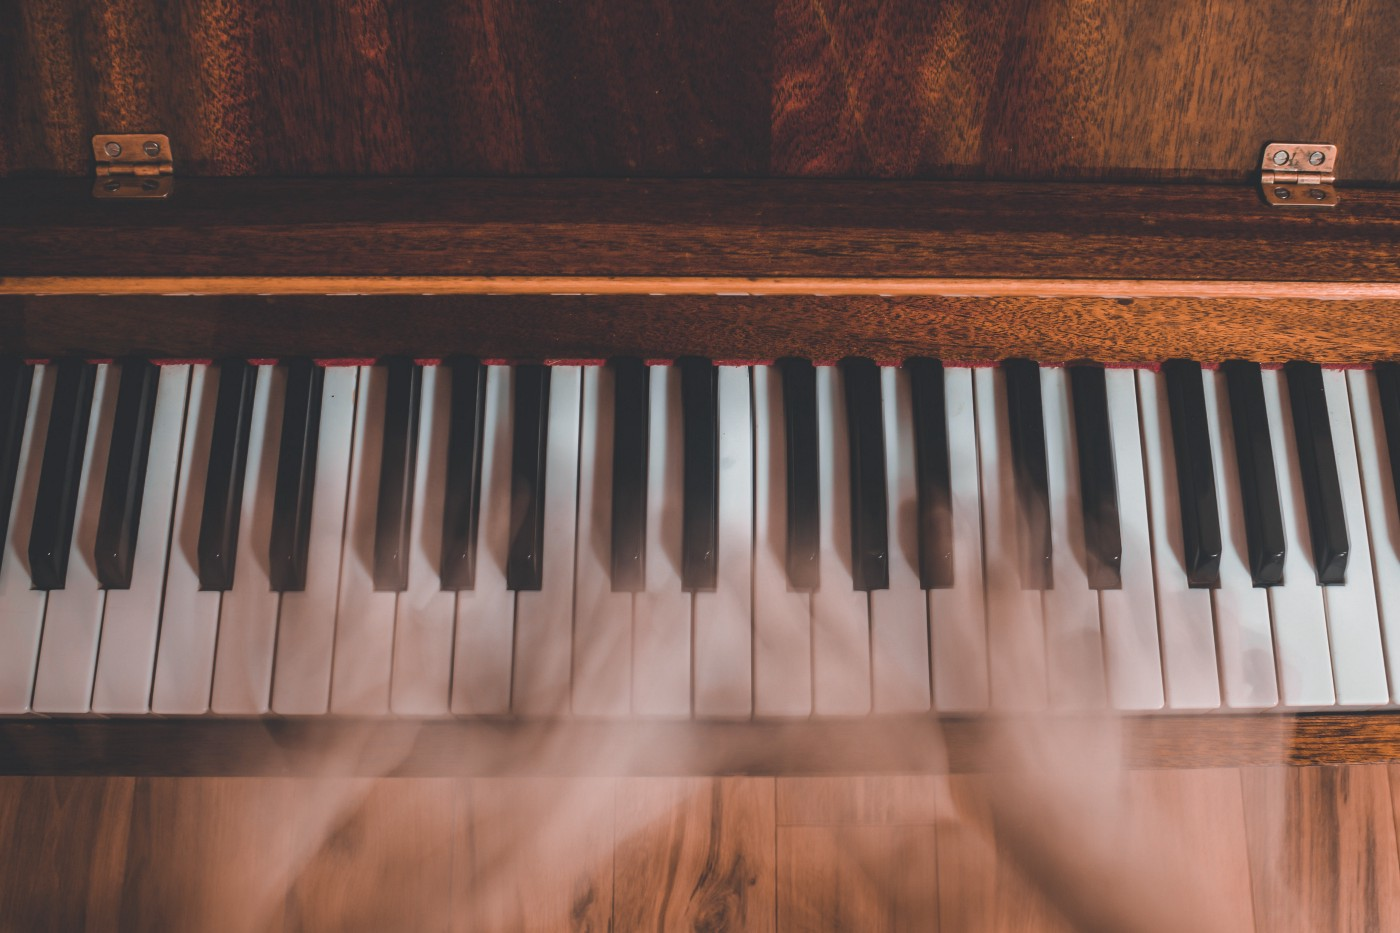 blur of hands playing a piano